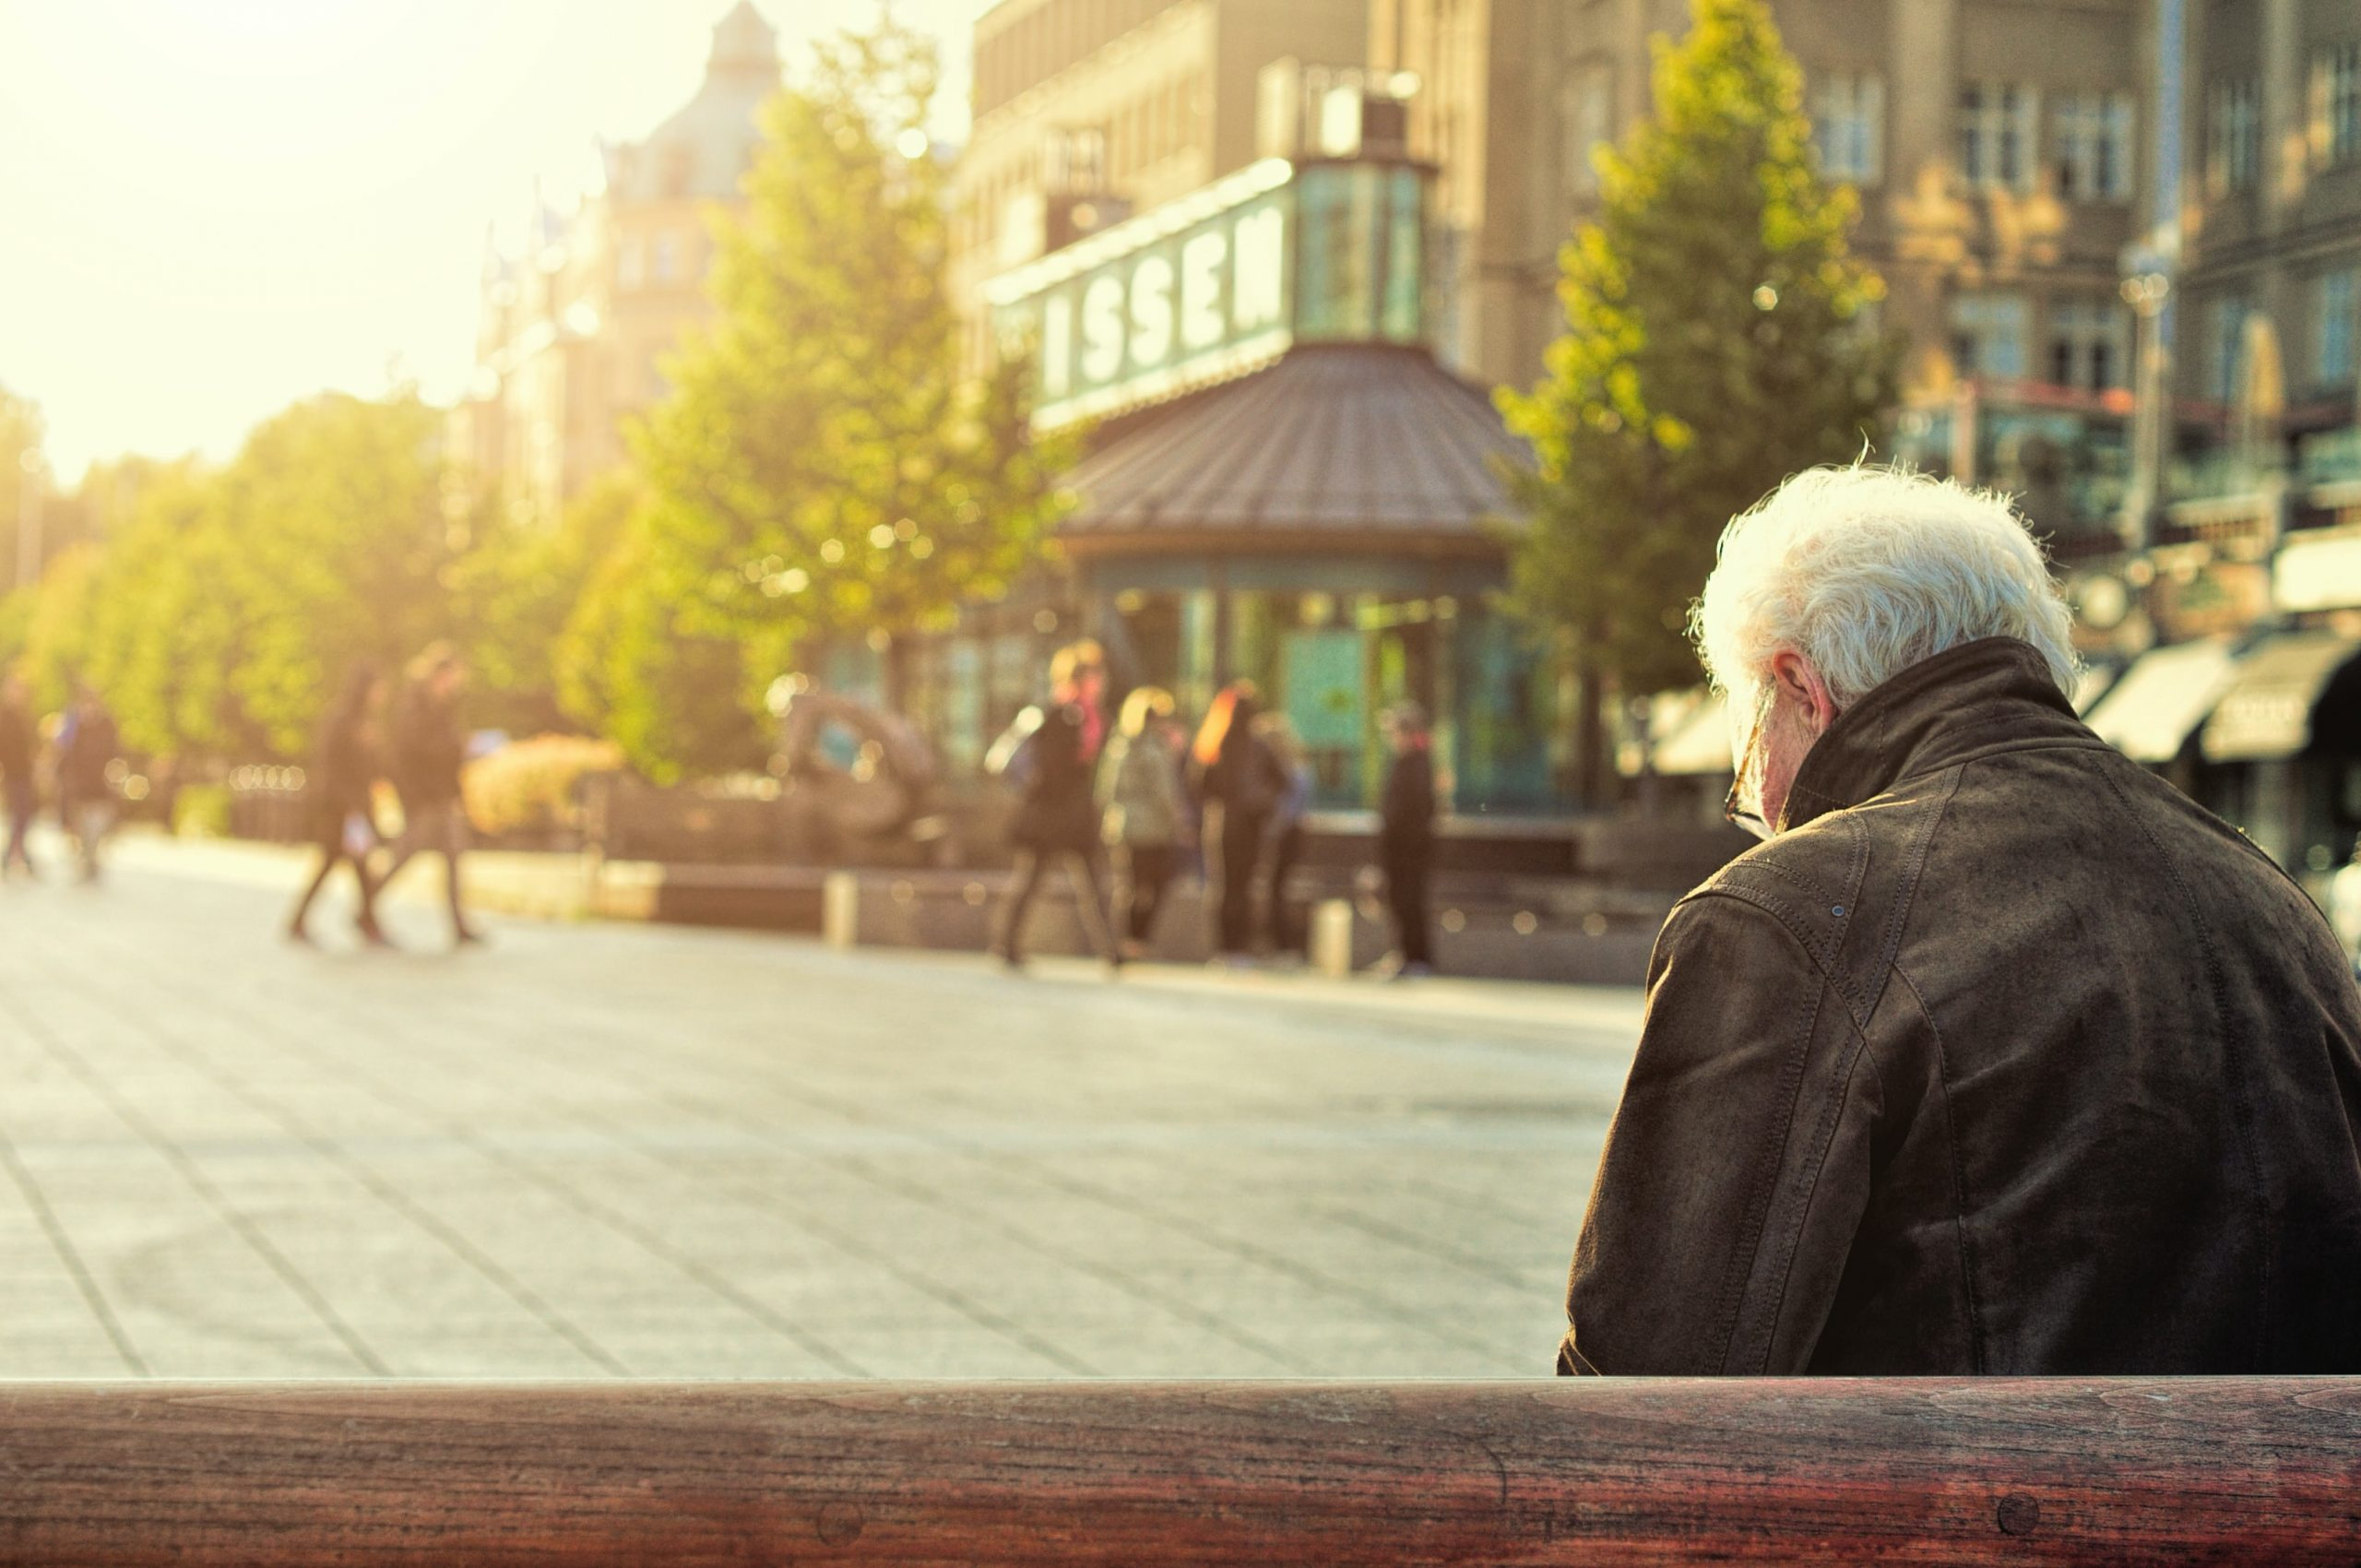 Older man sitting on a bench in a city. Looking downwards. People walking by at a distance.